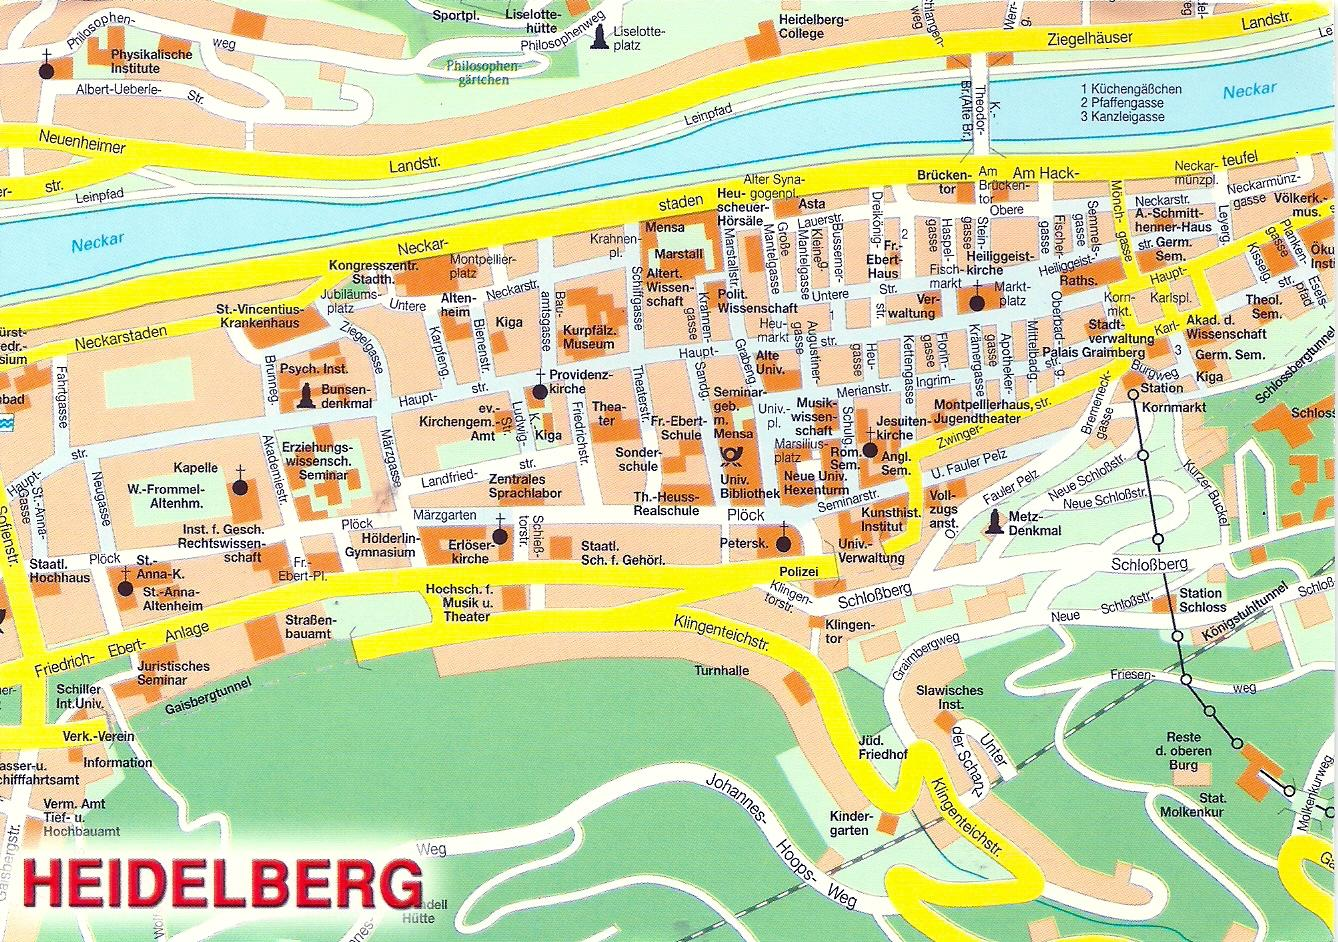 Projek Satu Dunia One World Project Germany Map of Heidelberg